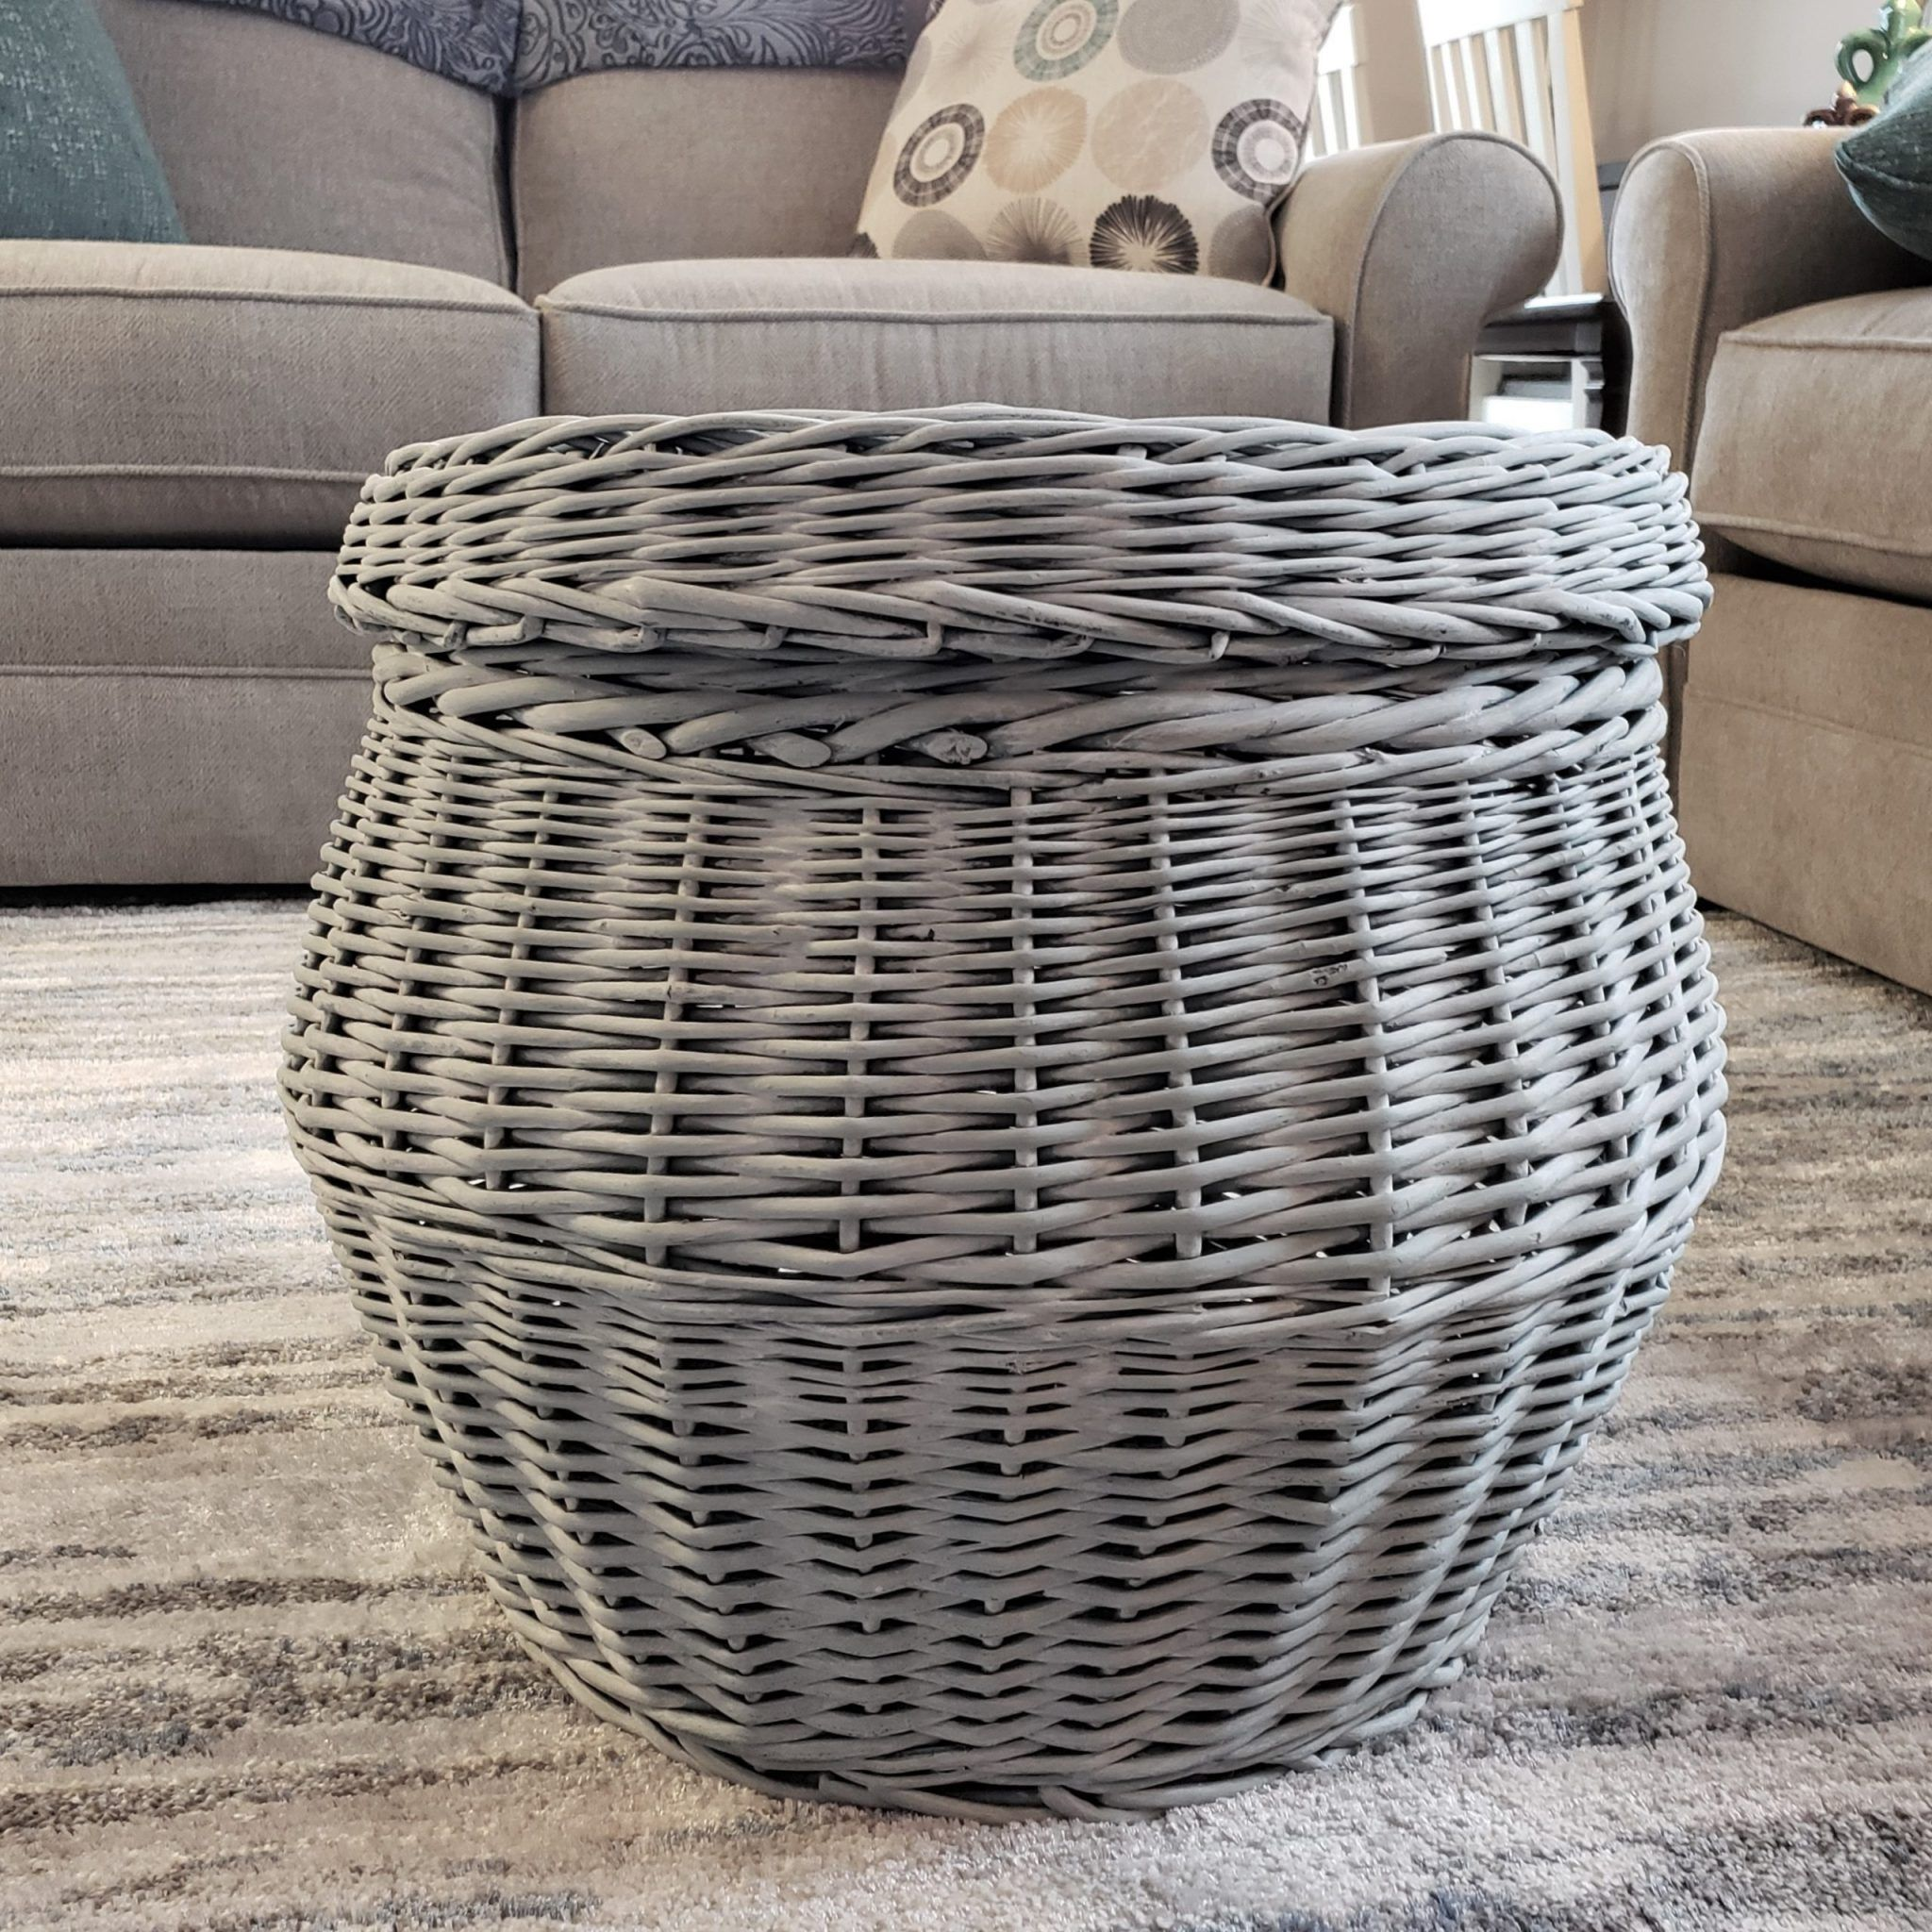 Diy Wicker Storage Table With Tabletop Tray In 2020 Wicker Coffee Table Diy Coffee Table Wicker Baskets Storage